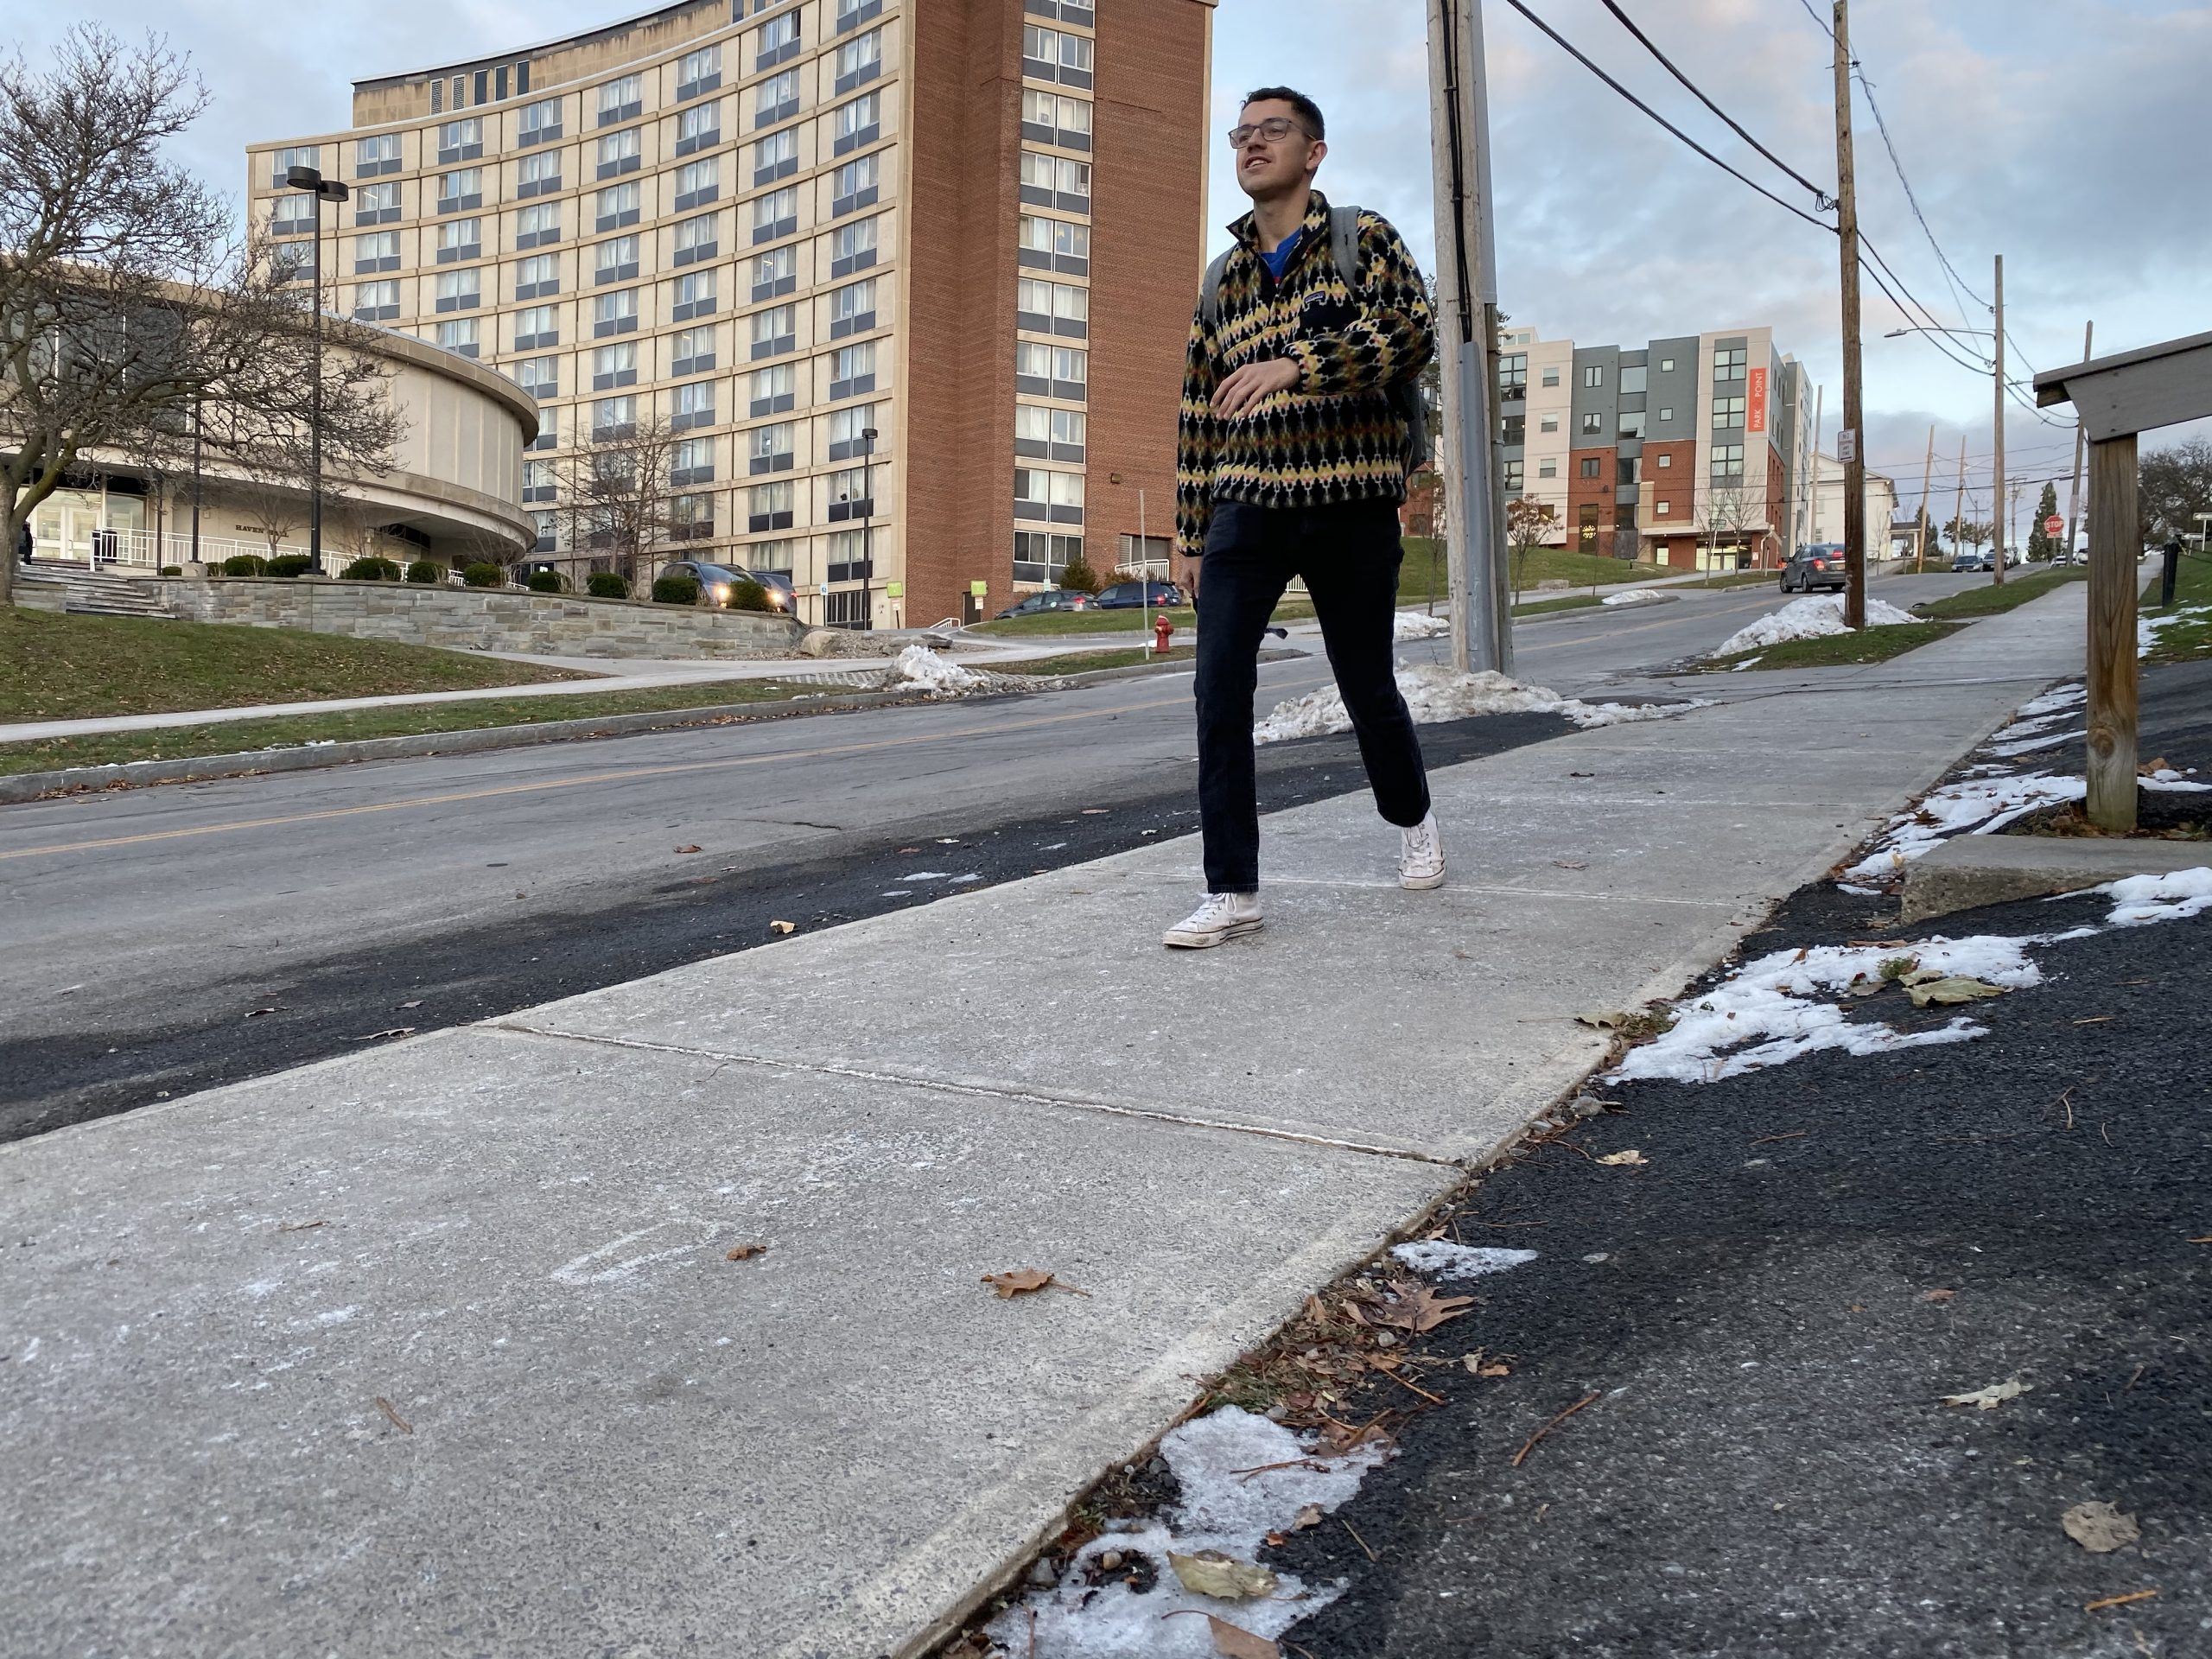 Sidewalk quality is especially a concern around city schools and the university, where they are well tread and weathered.